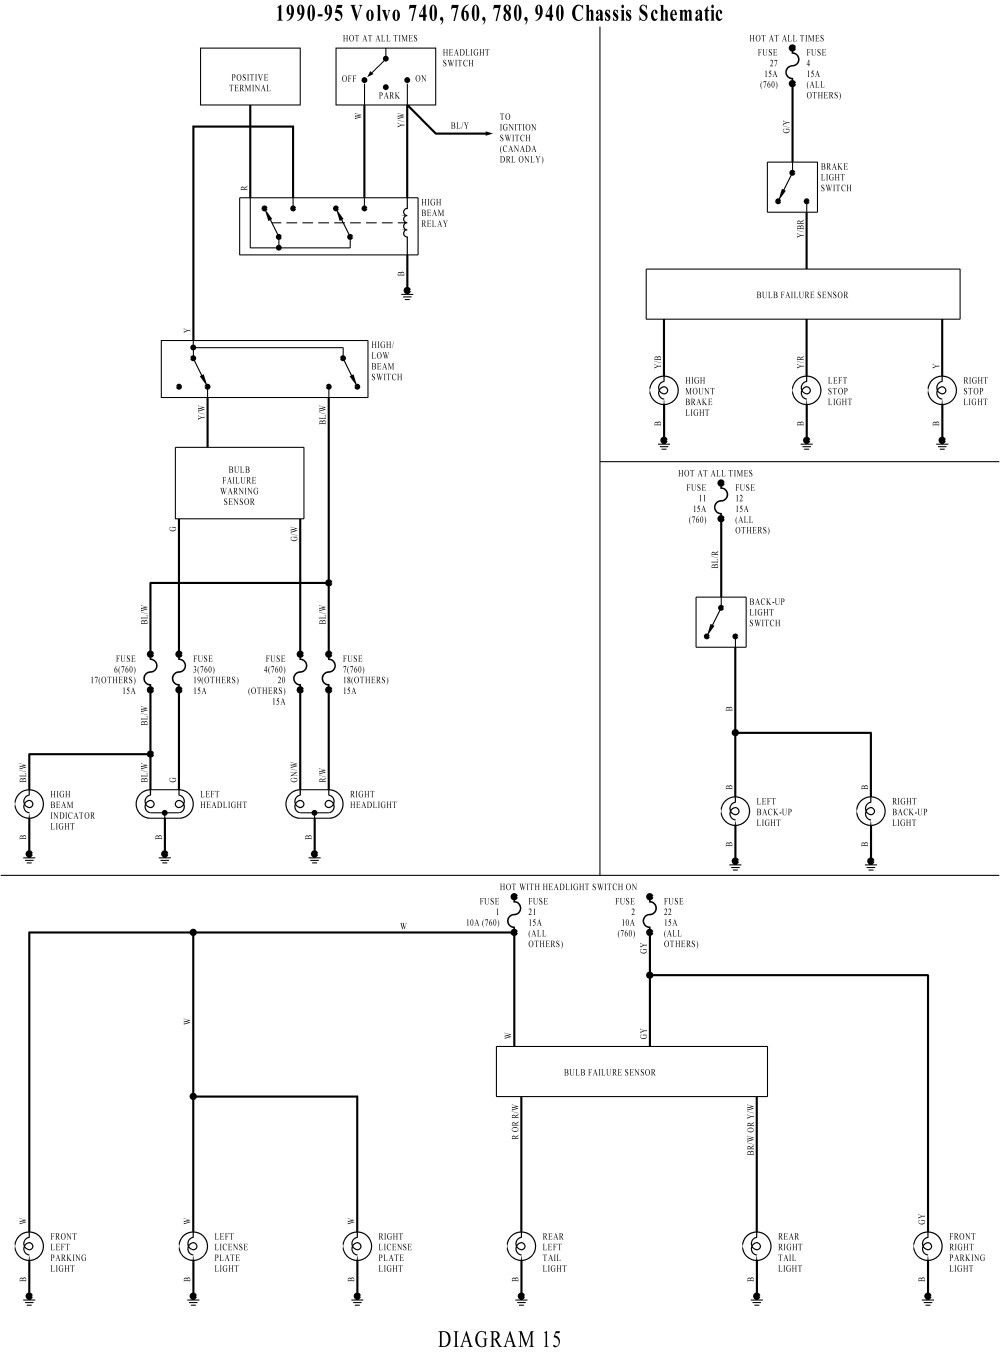 hight resolution of wiring diagram 1990 volvo wagon wiring diagram yer 1990 volvo 740 gle wagon engine diagram wiring